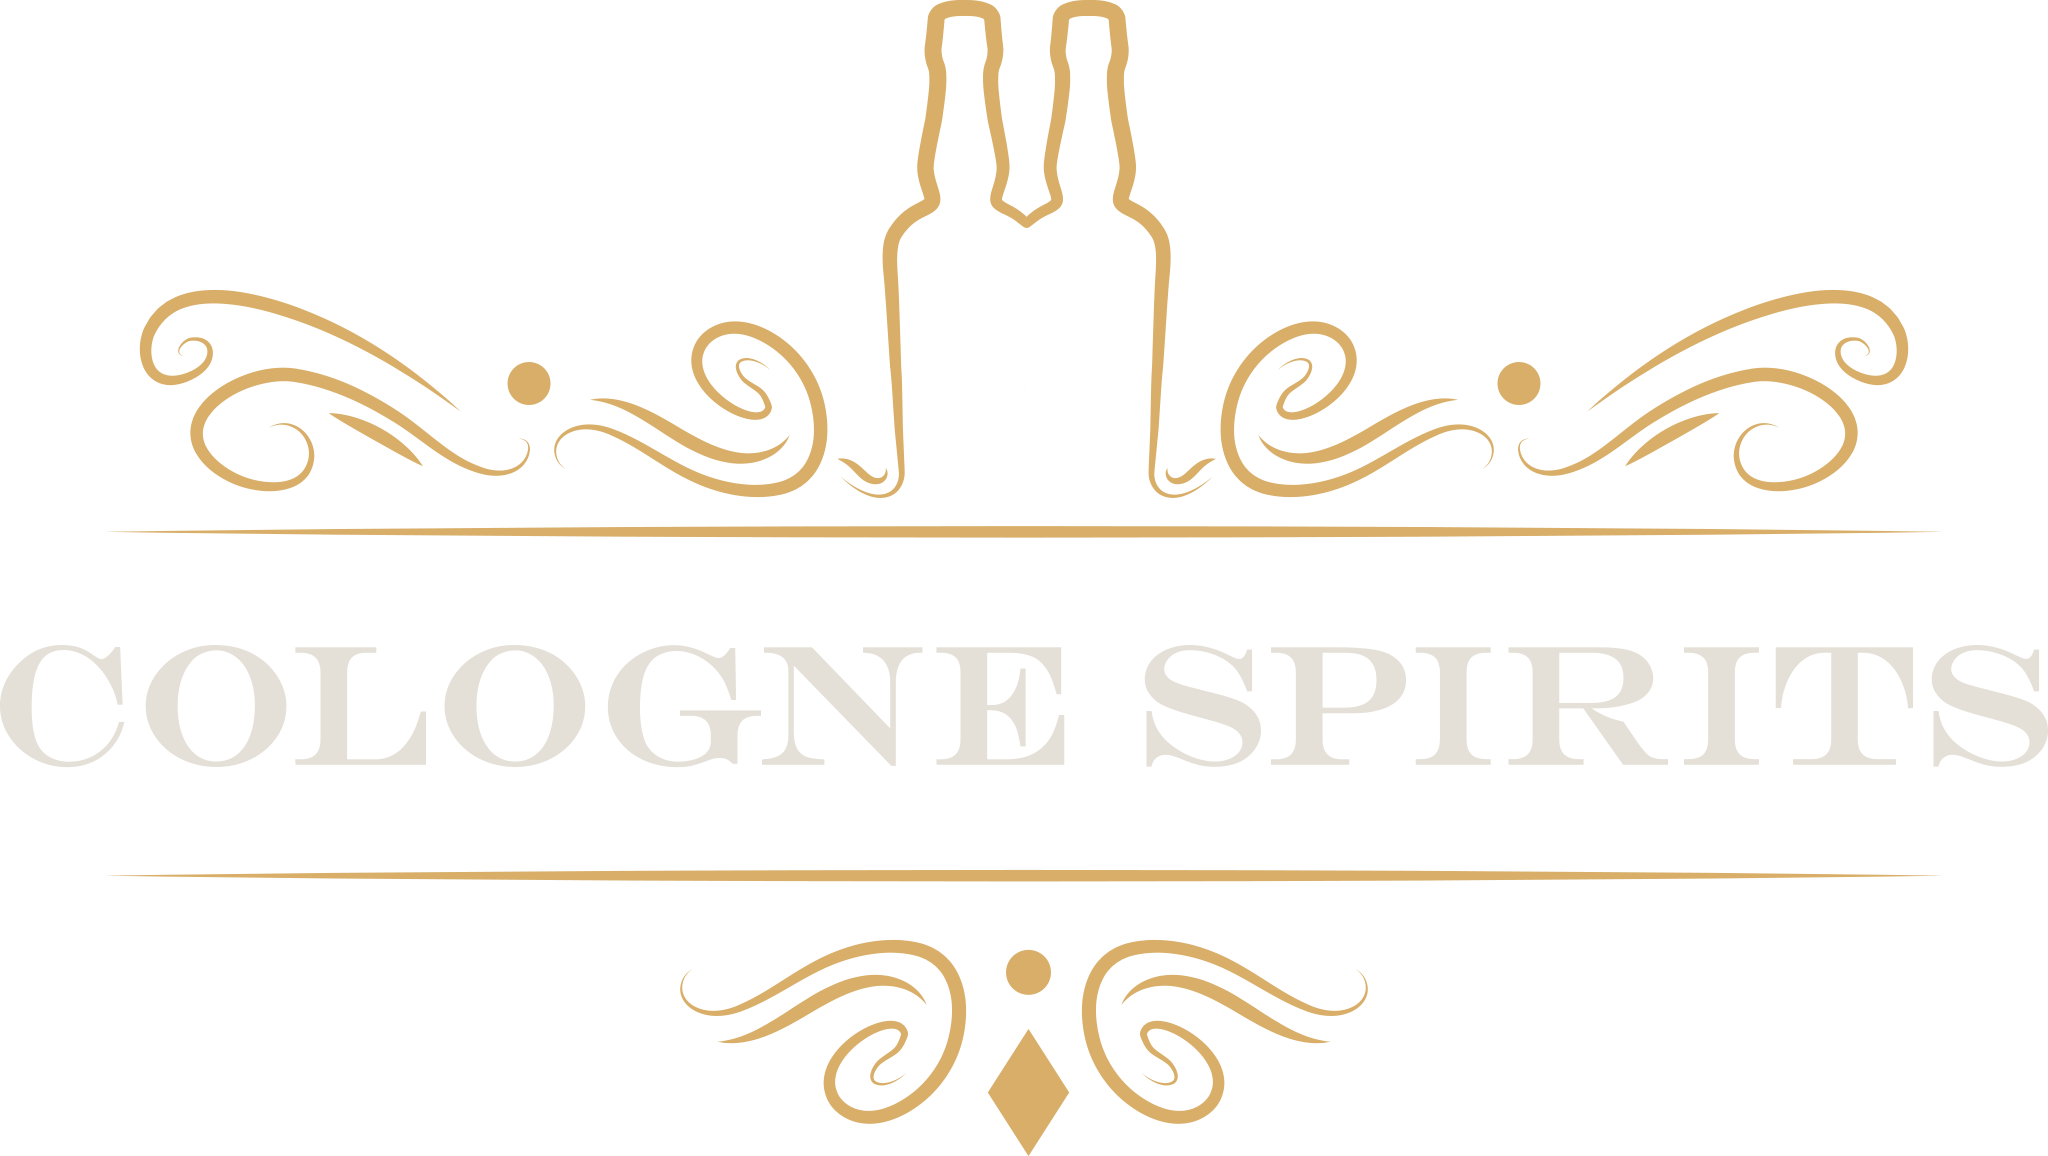 Cologne Spirits - Rum und Genussmesse in Köln